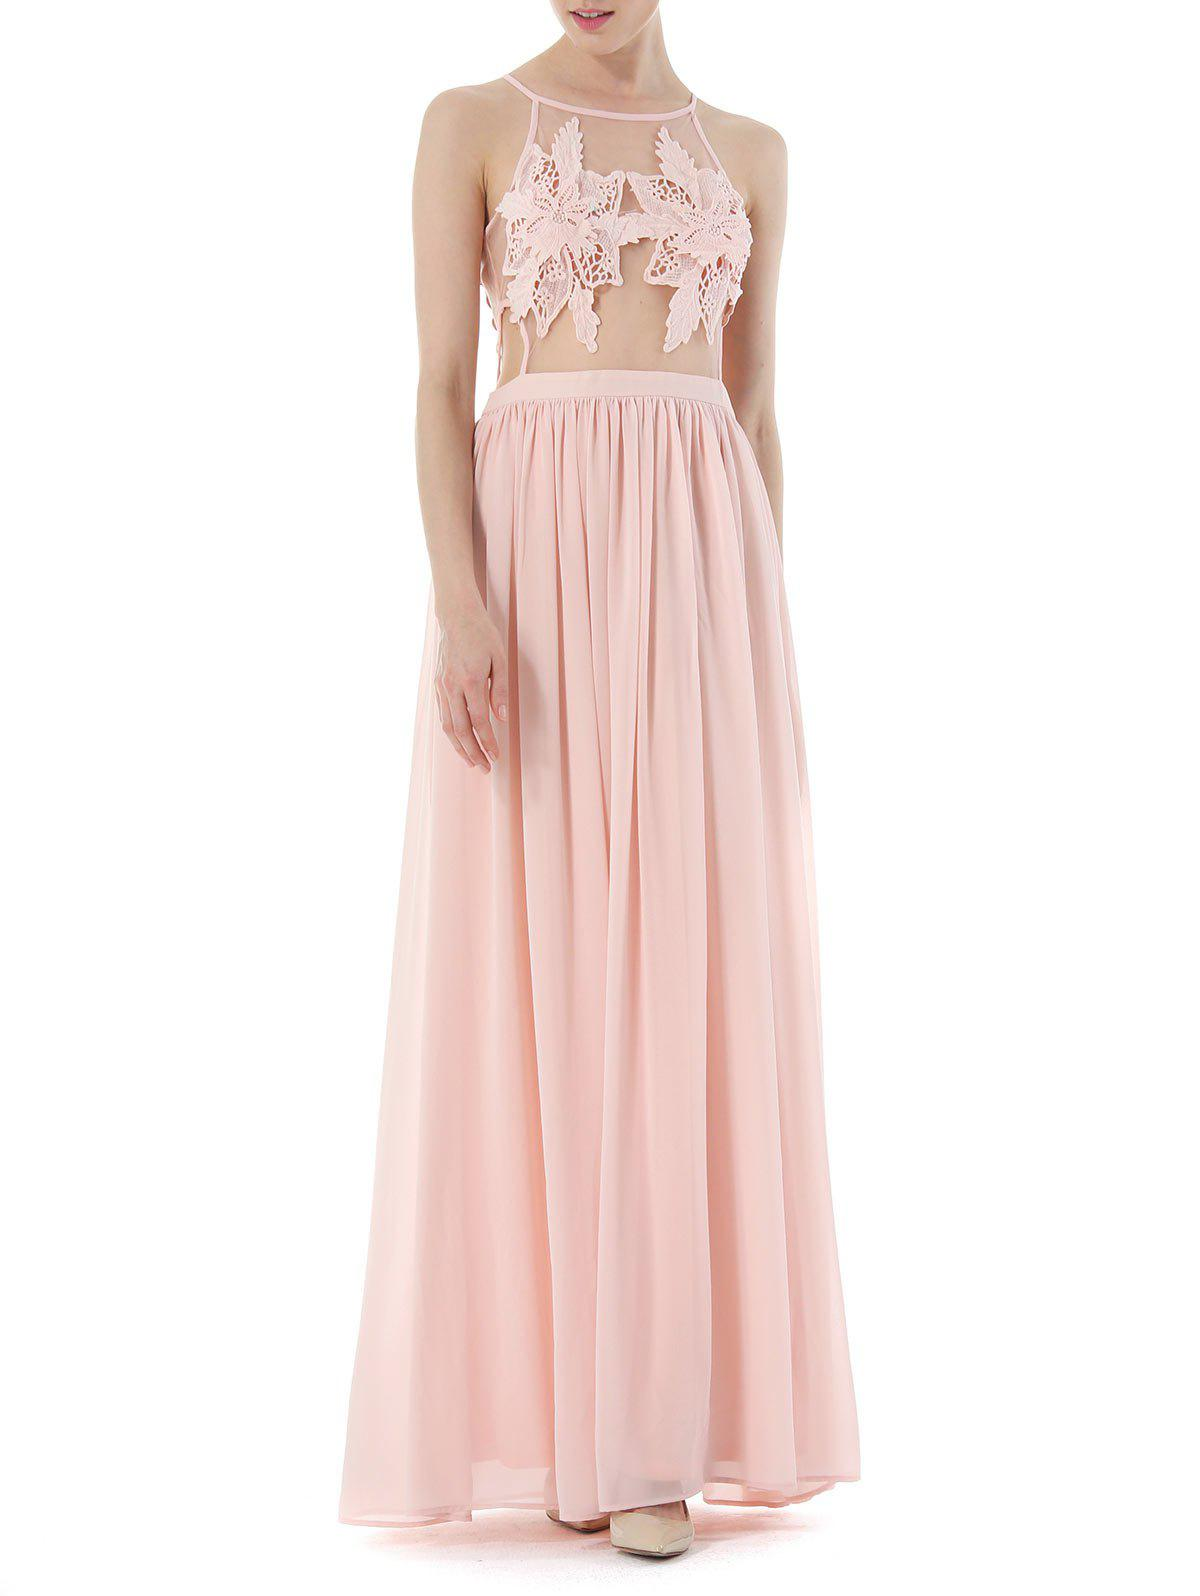 2018 Cochet Lace High Waisted Formal Prom Dress PINK S In Maxi ...